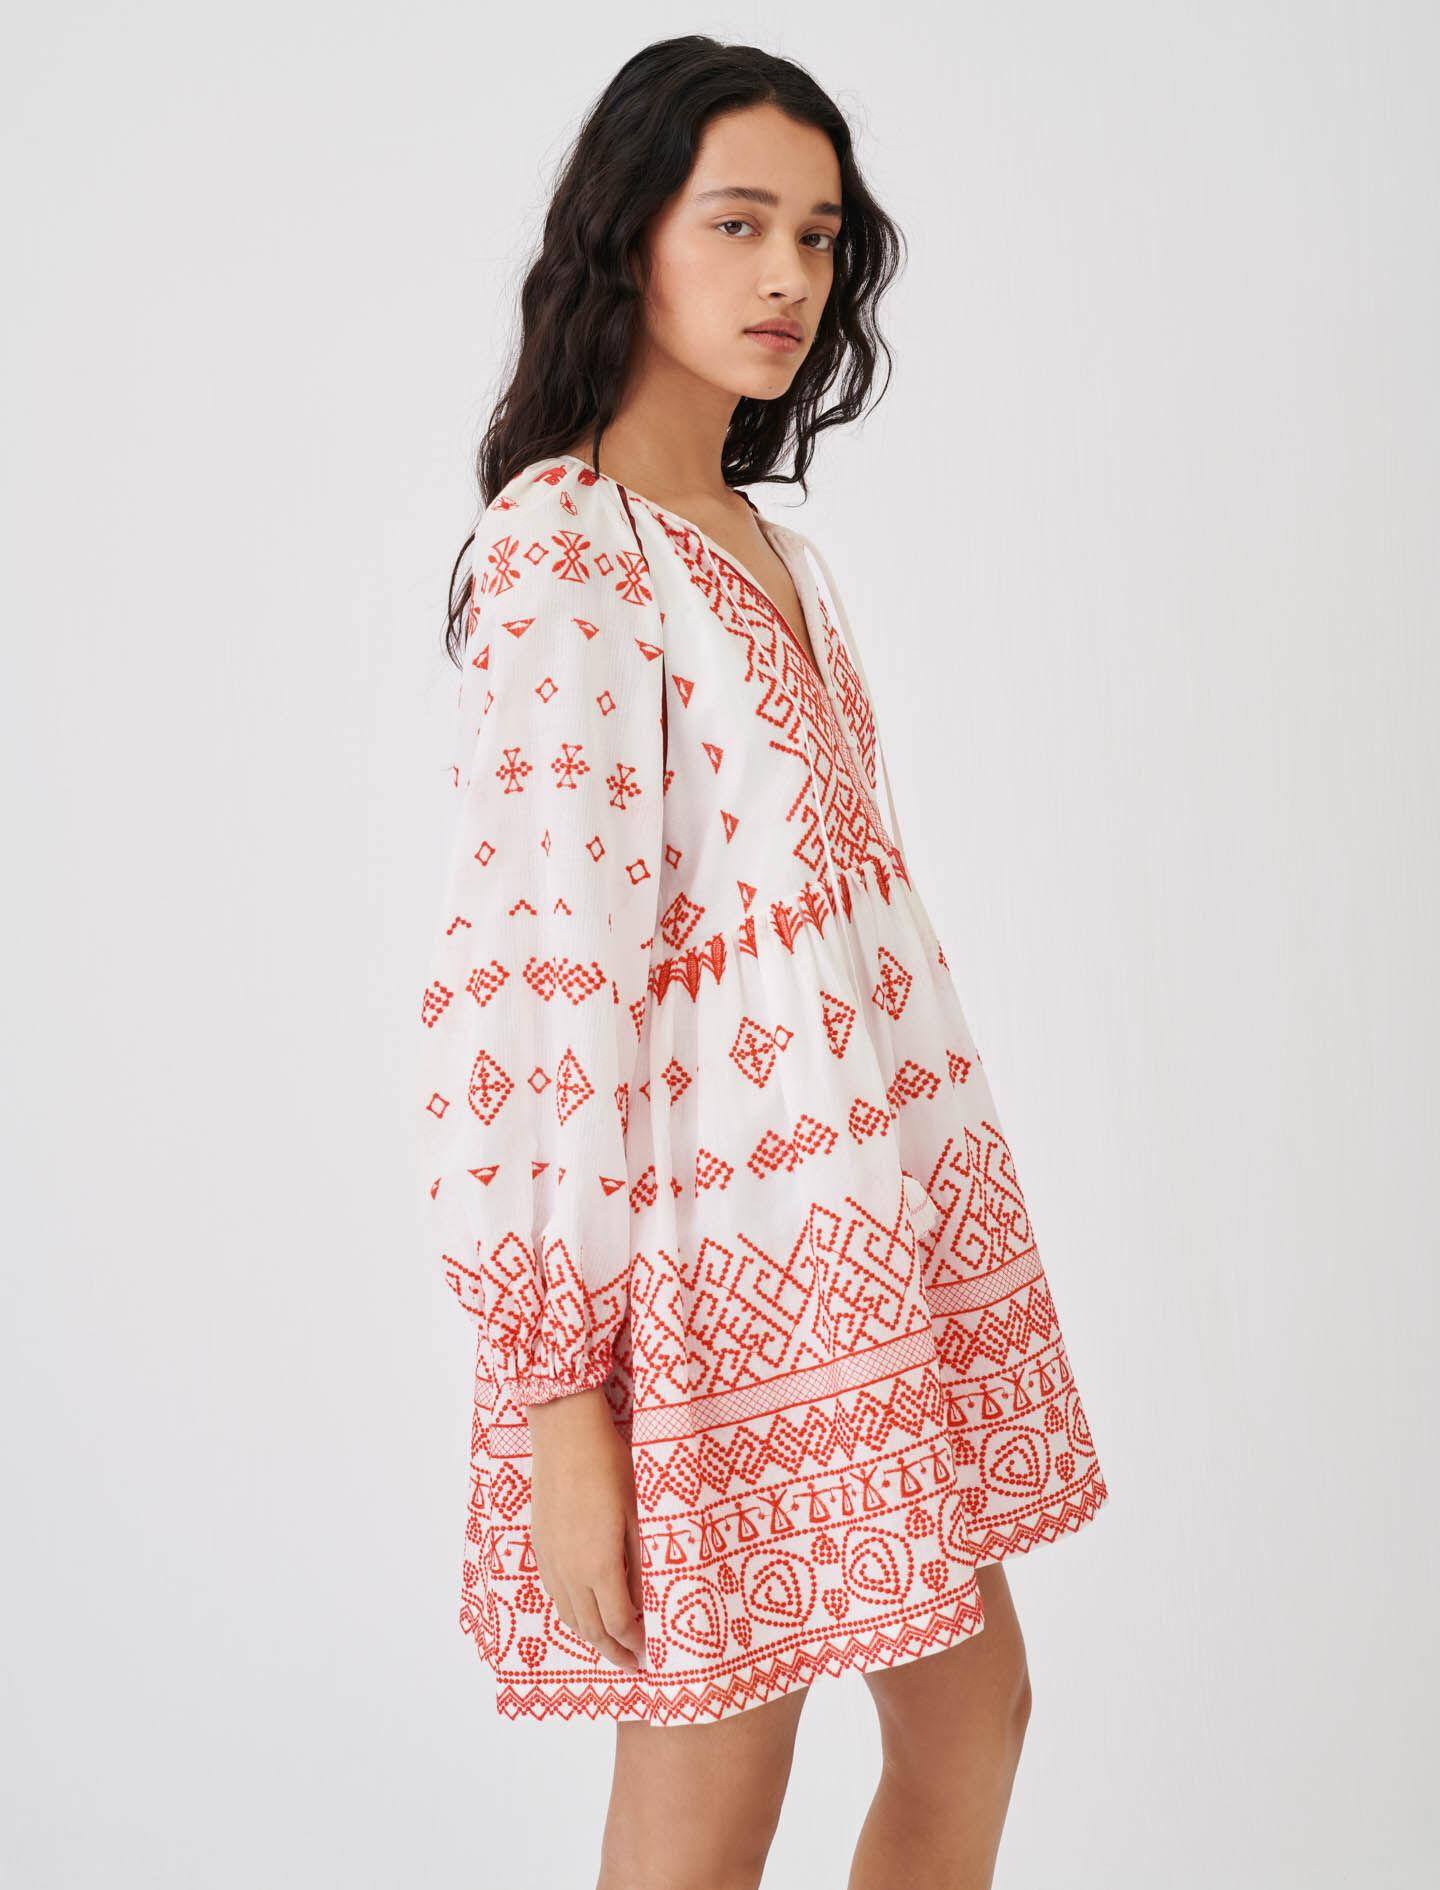 BABY-DOLL STYLE EMBROIDERED DRESS